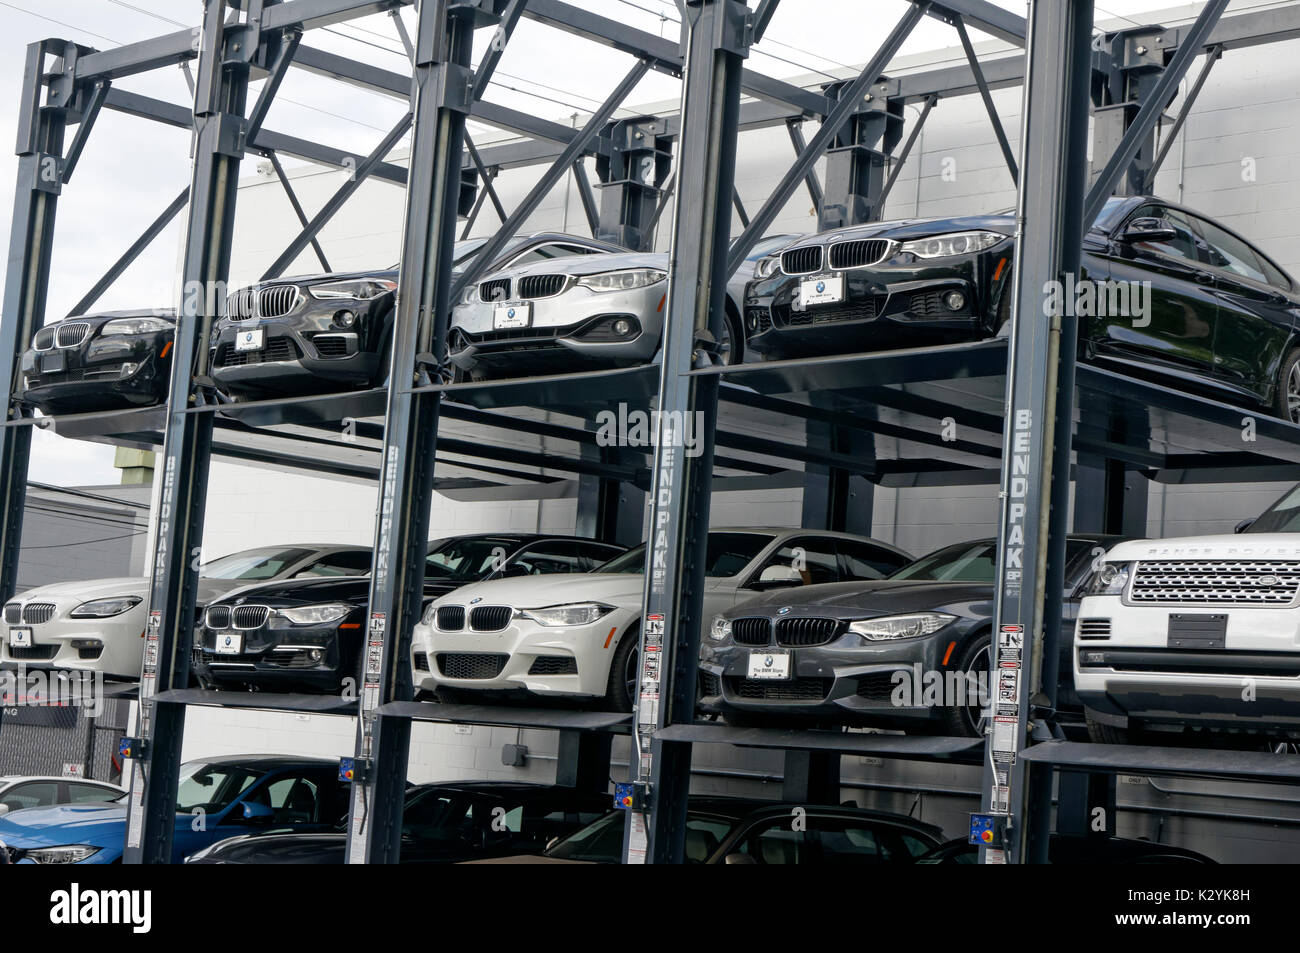 New luxury automobiles parked on a multiple level elevator car rack at the BMW Store dealership in Vancouver, BC, Canada - Stock Image